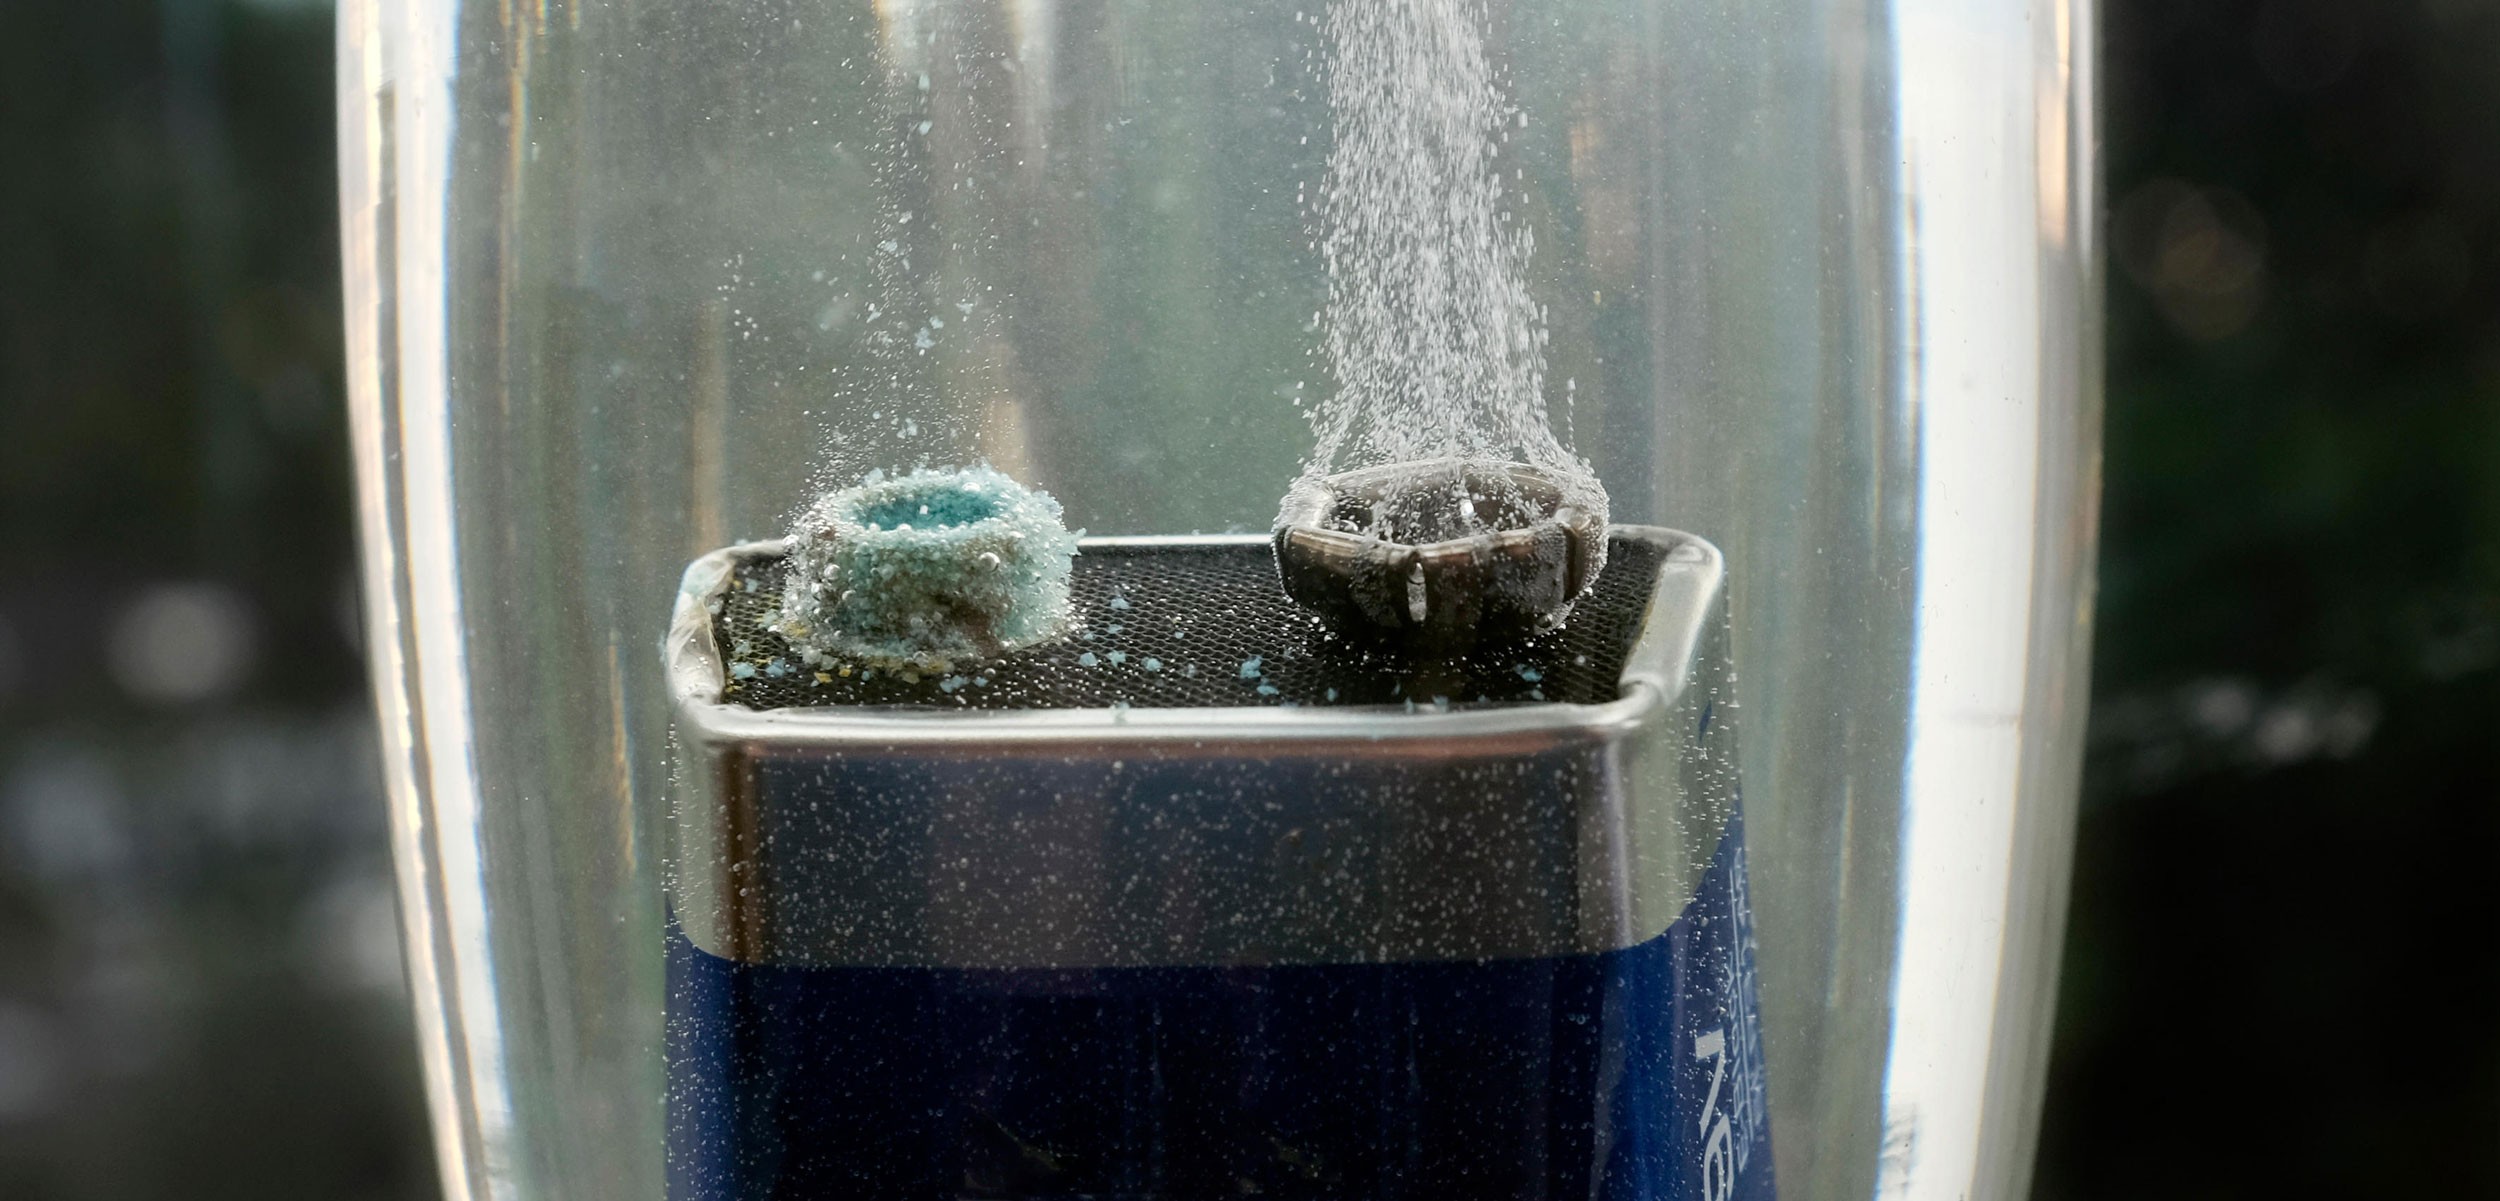 hydrogen bubbling off a submerged battery